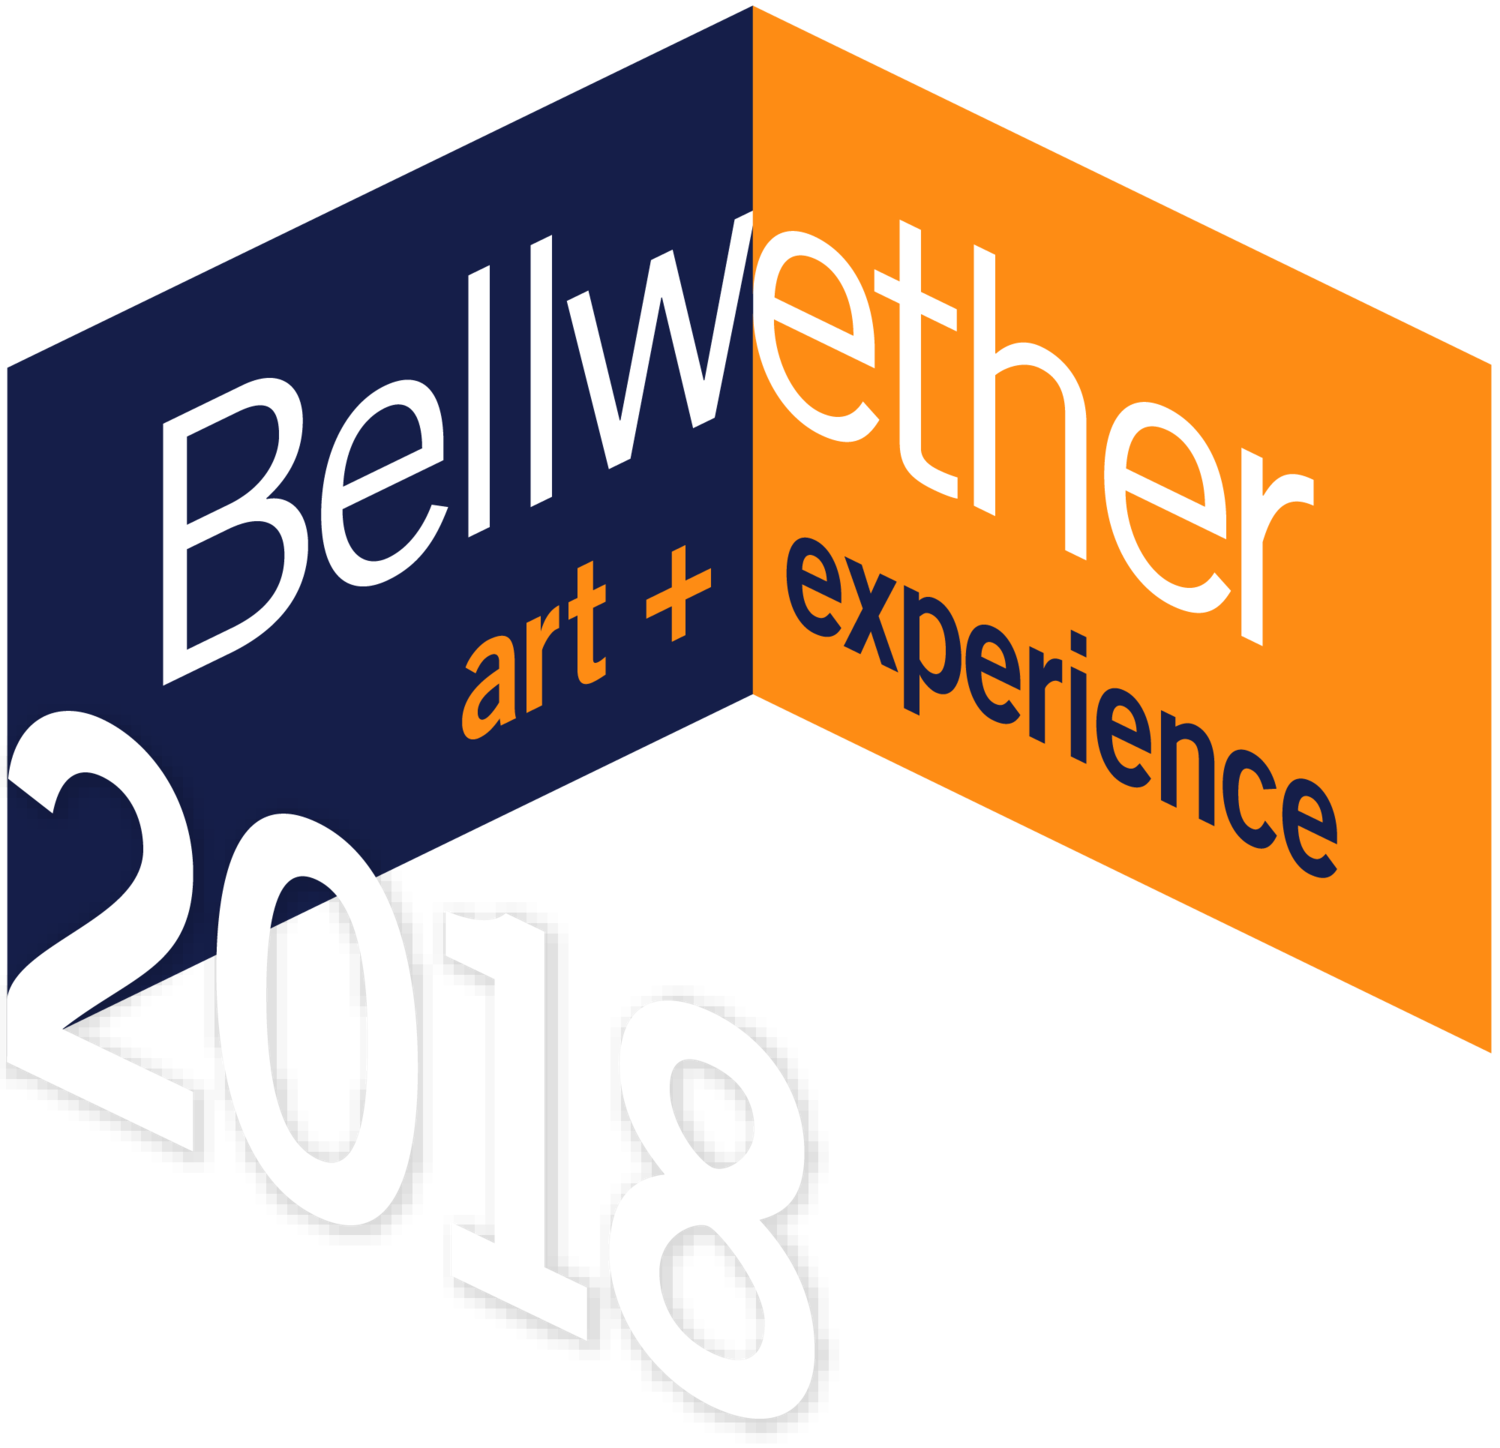 Bellwether 2018